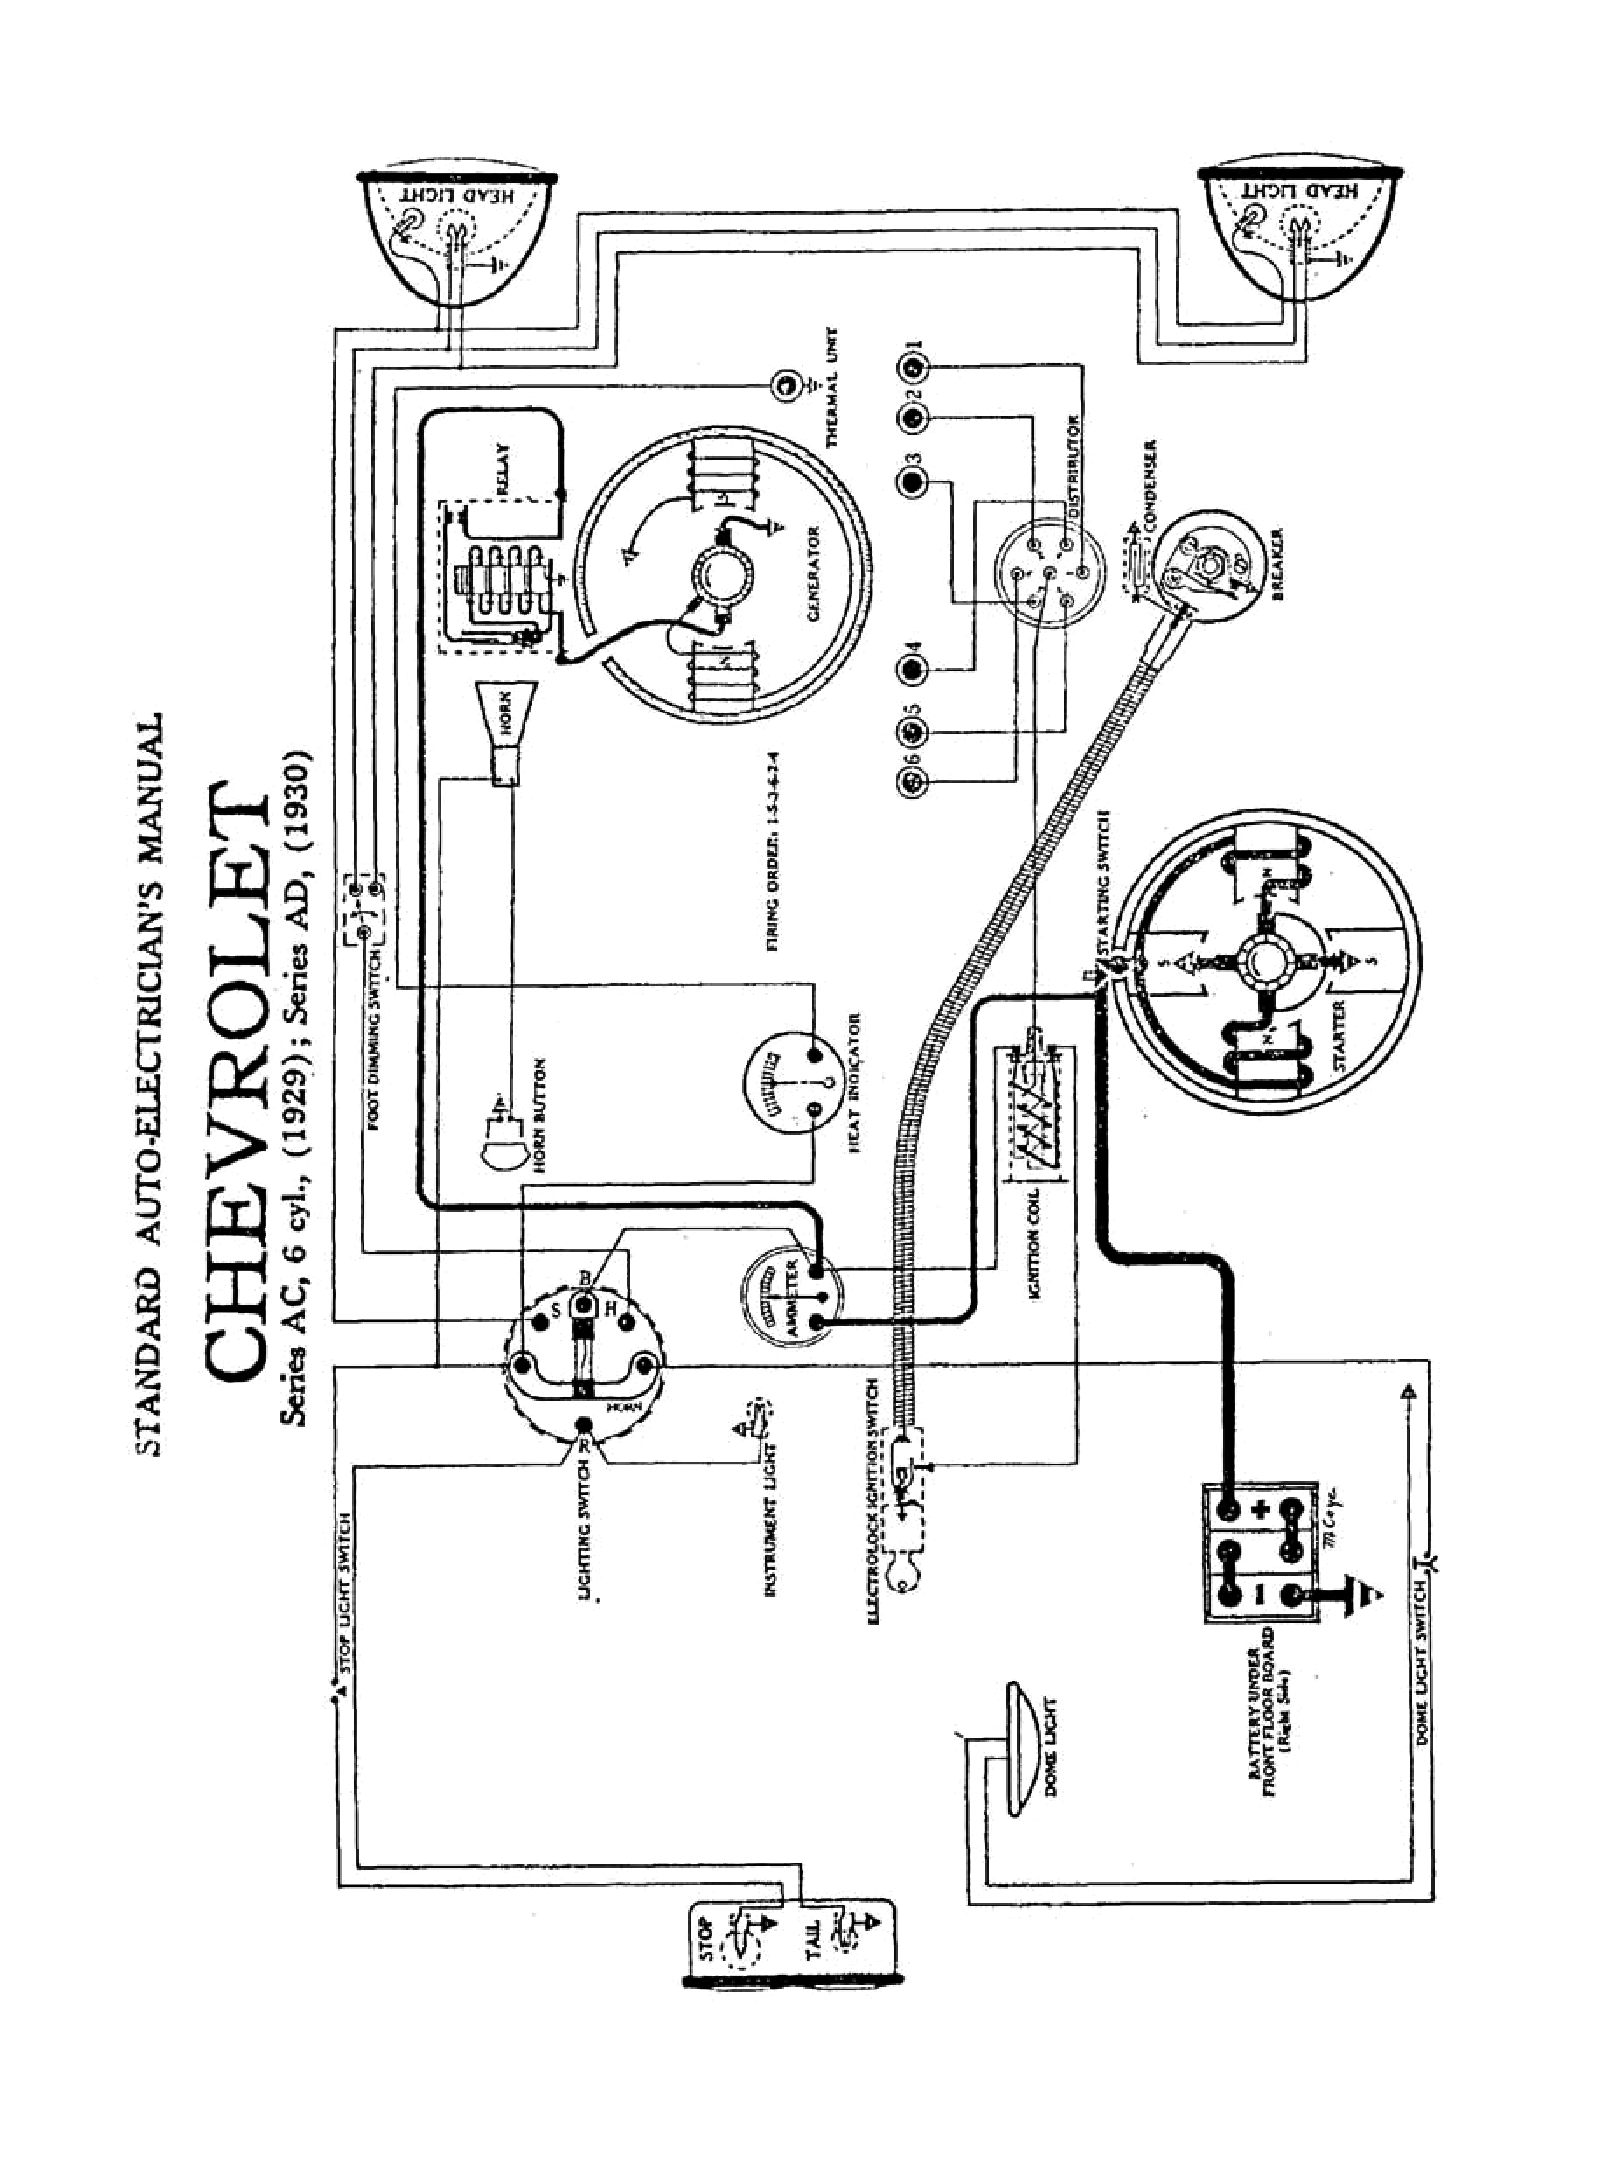 1939 pontiac wiring diagram get free image about wiring diagram rh linxglobal co Chevy Silverado Wiring Diagram 1975 Chevy Alternator Wiring Diagram